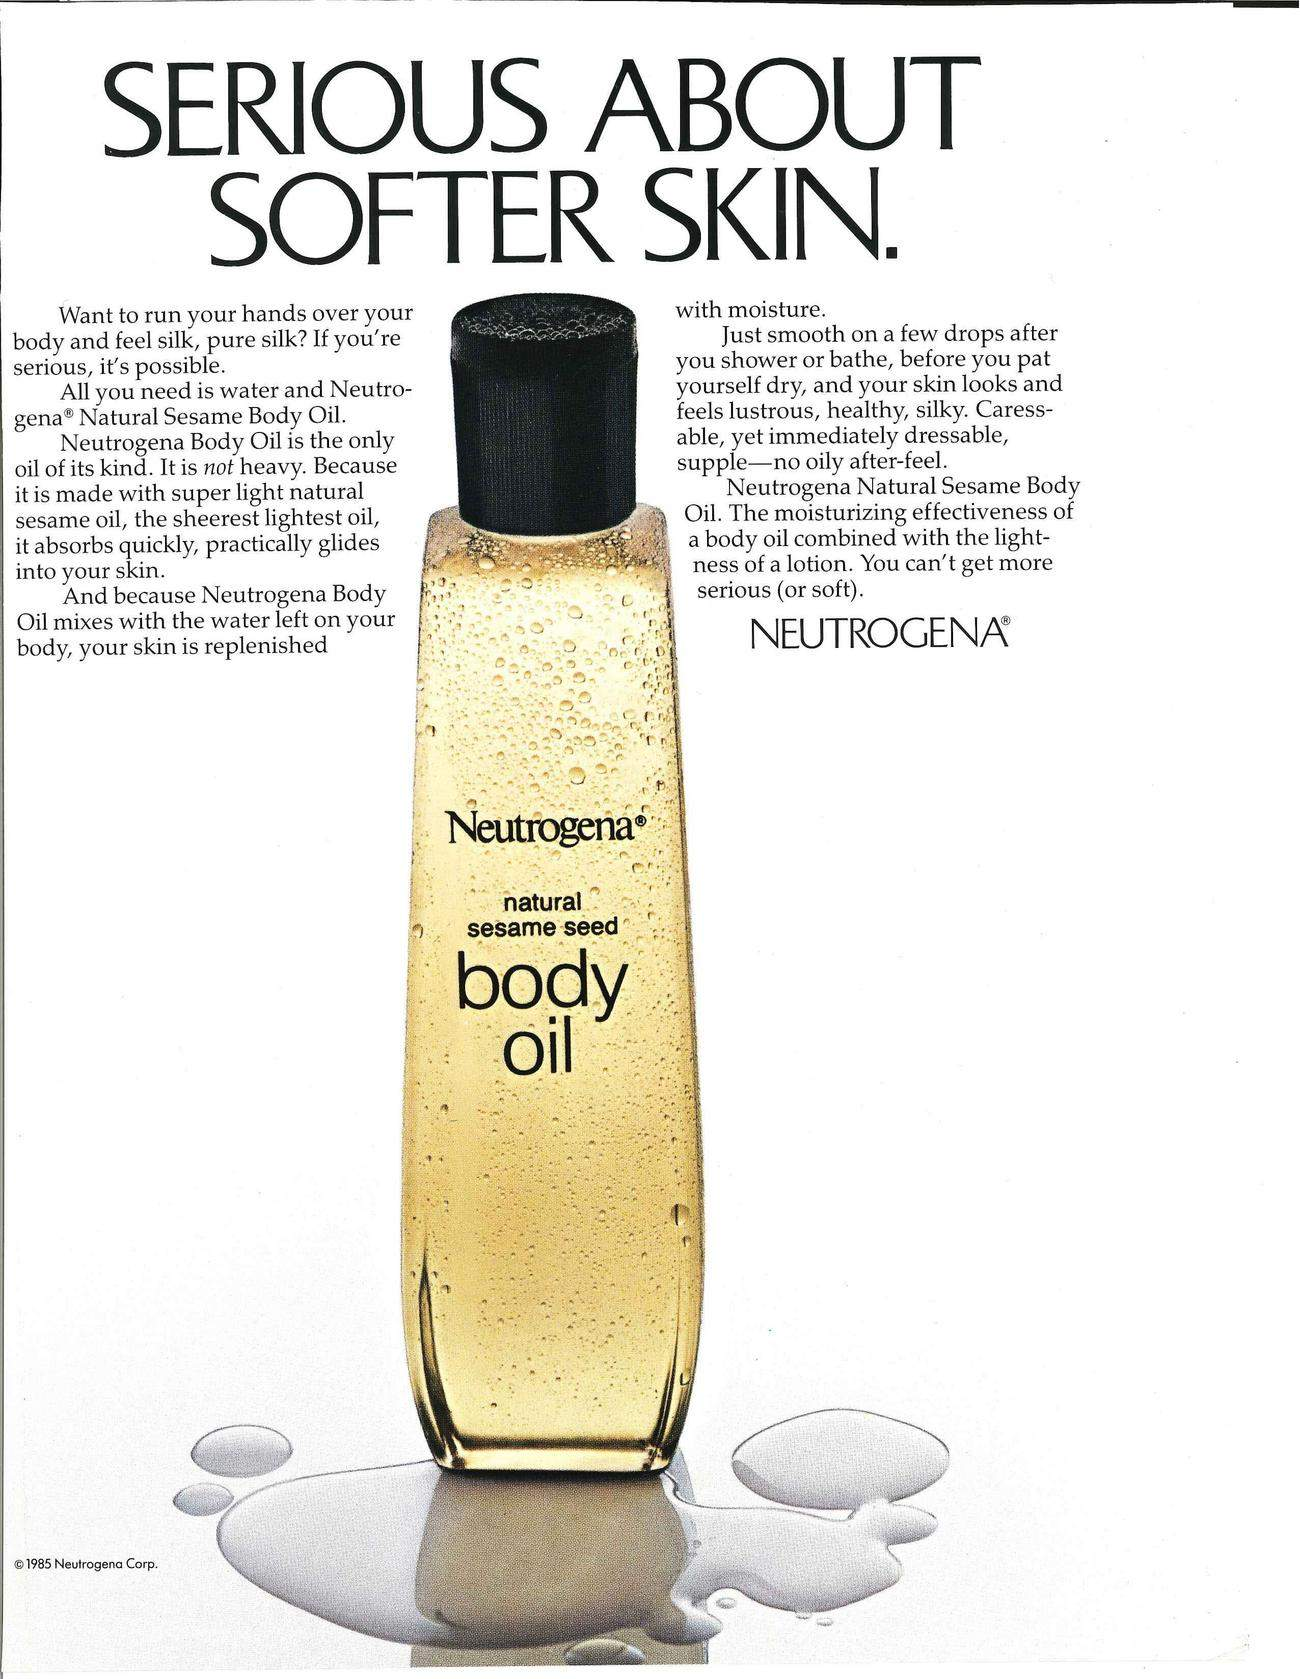 neutrogena-body-oil_1985